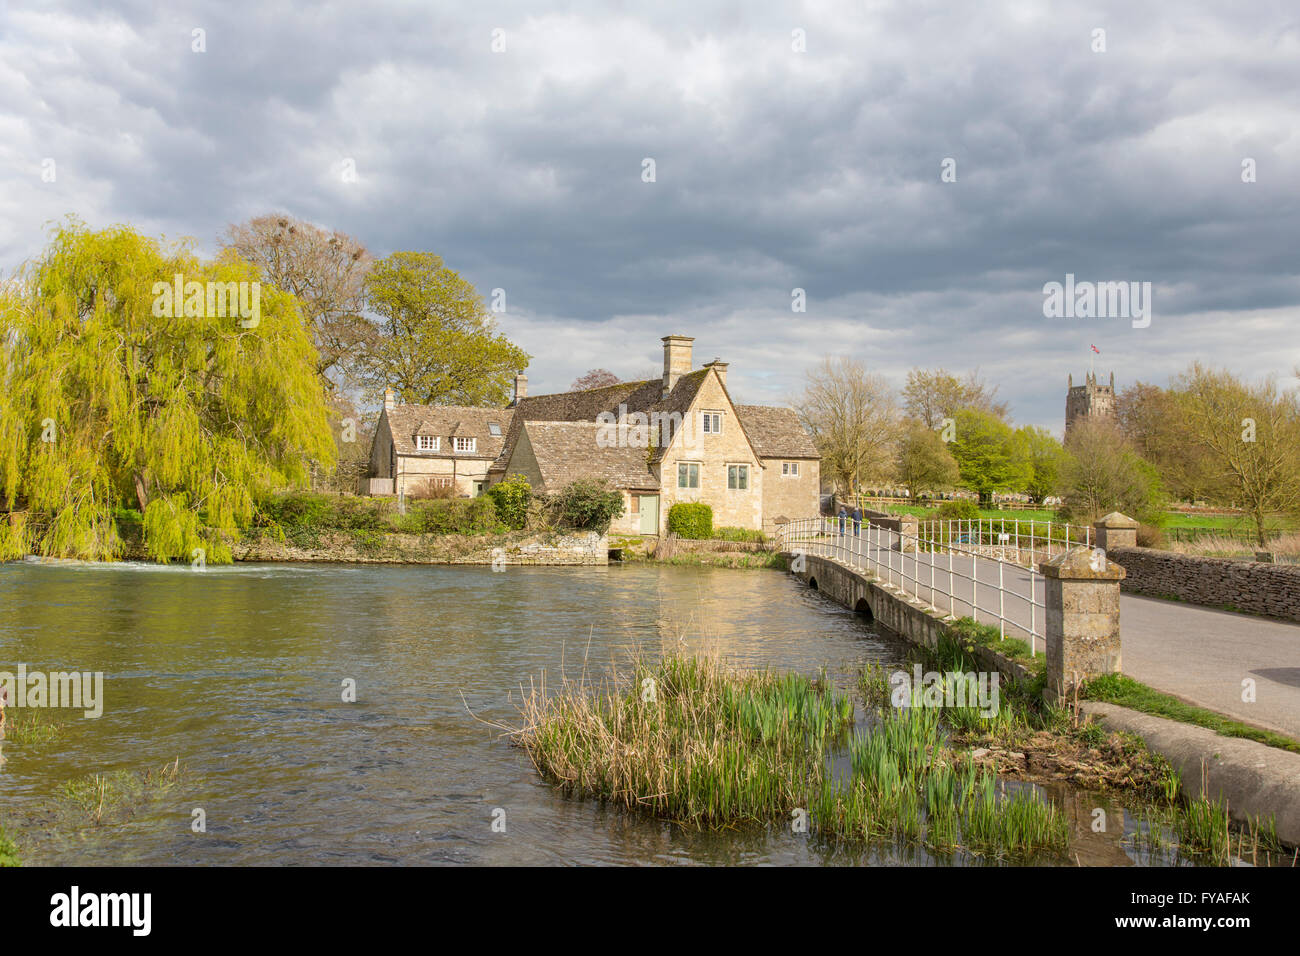 Fairford Mill and the River Coln in the small Cotswold town of Fairford, Gloucestershire, England, UK - Stock Image